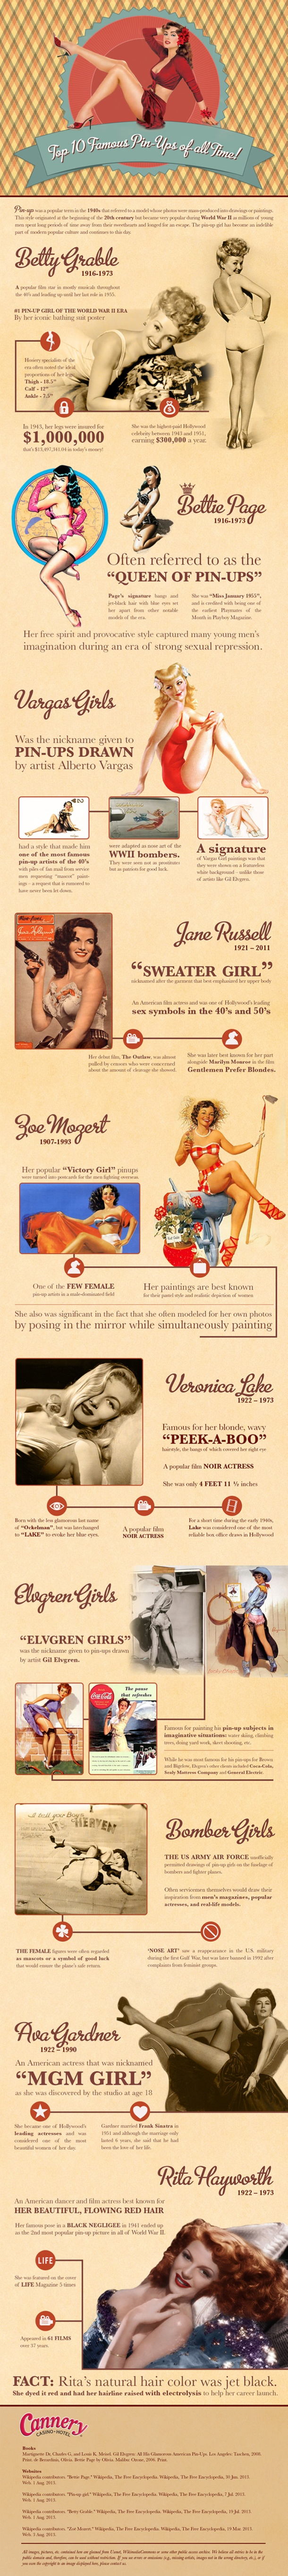 Top 10 Famous Pinups of All Time